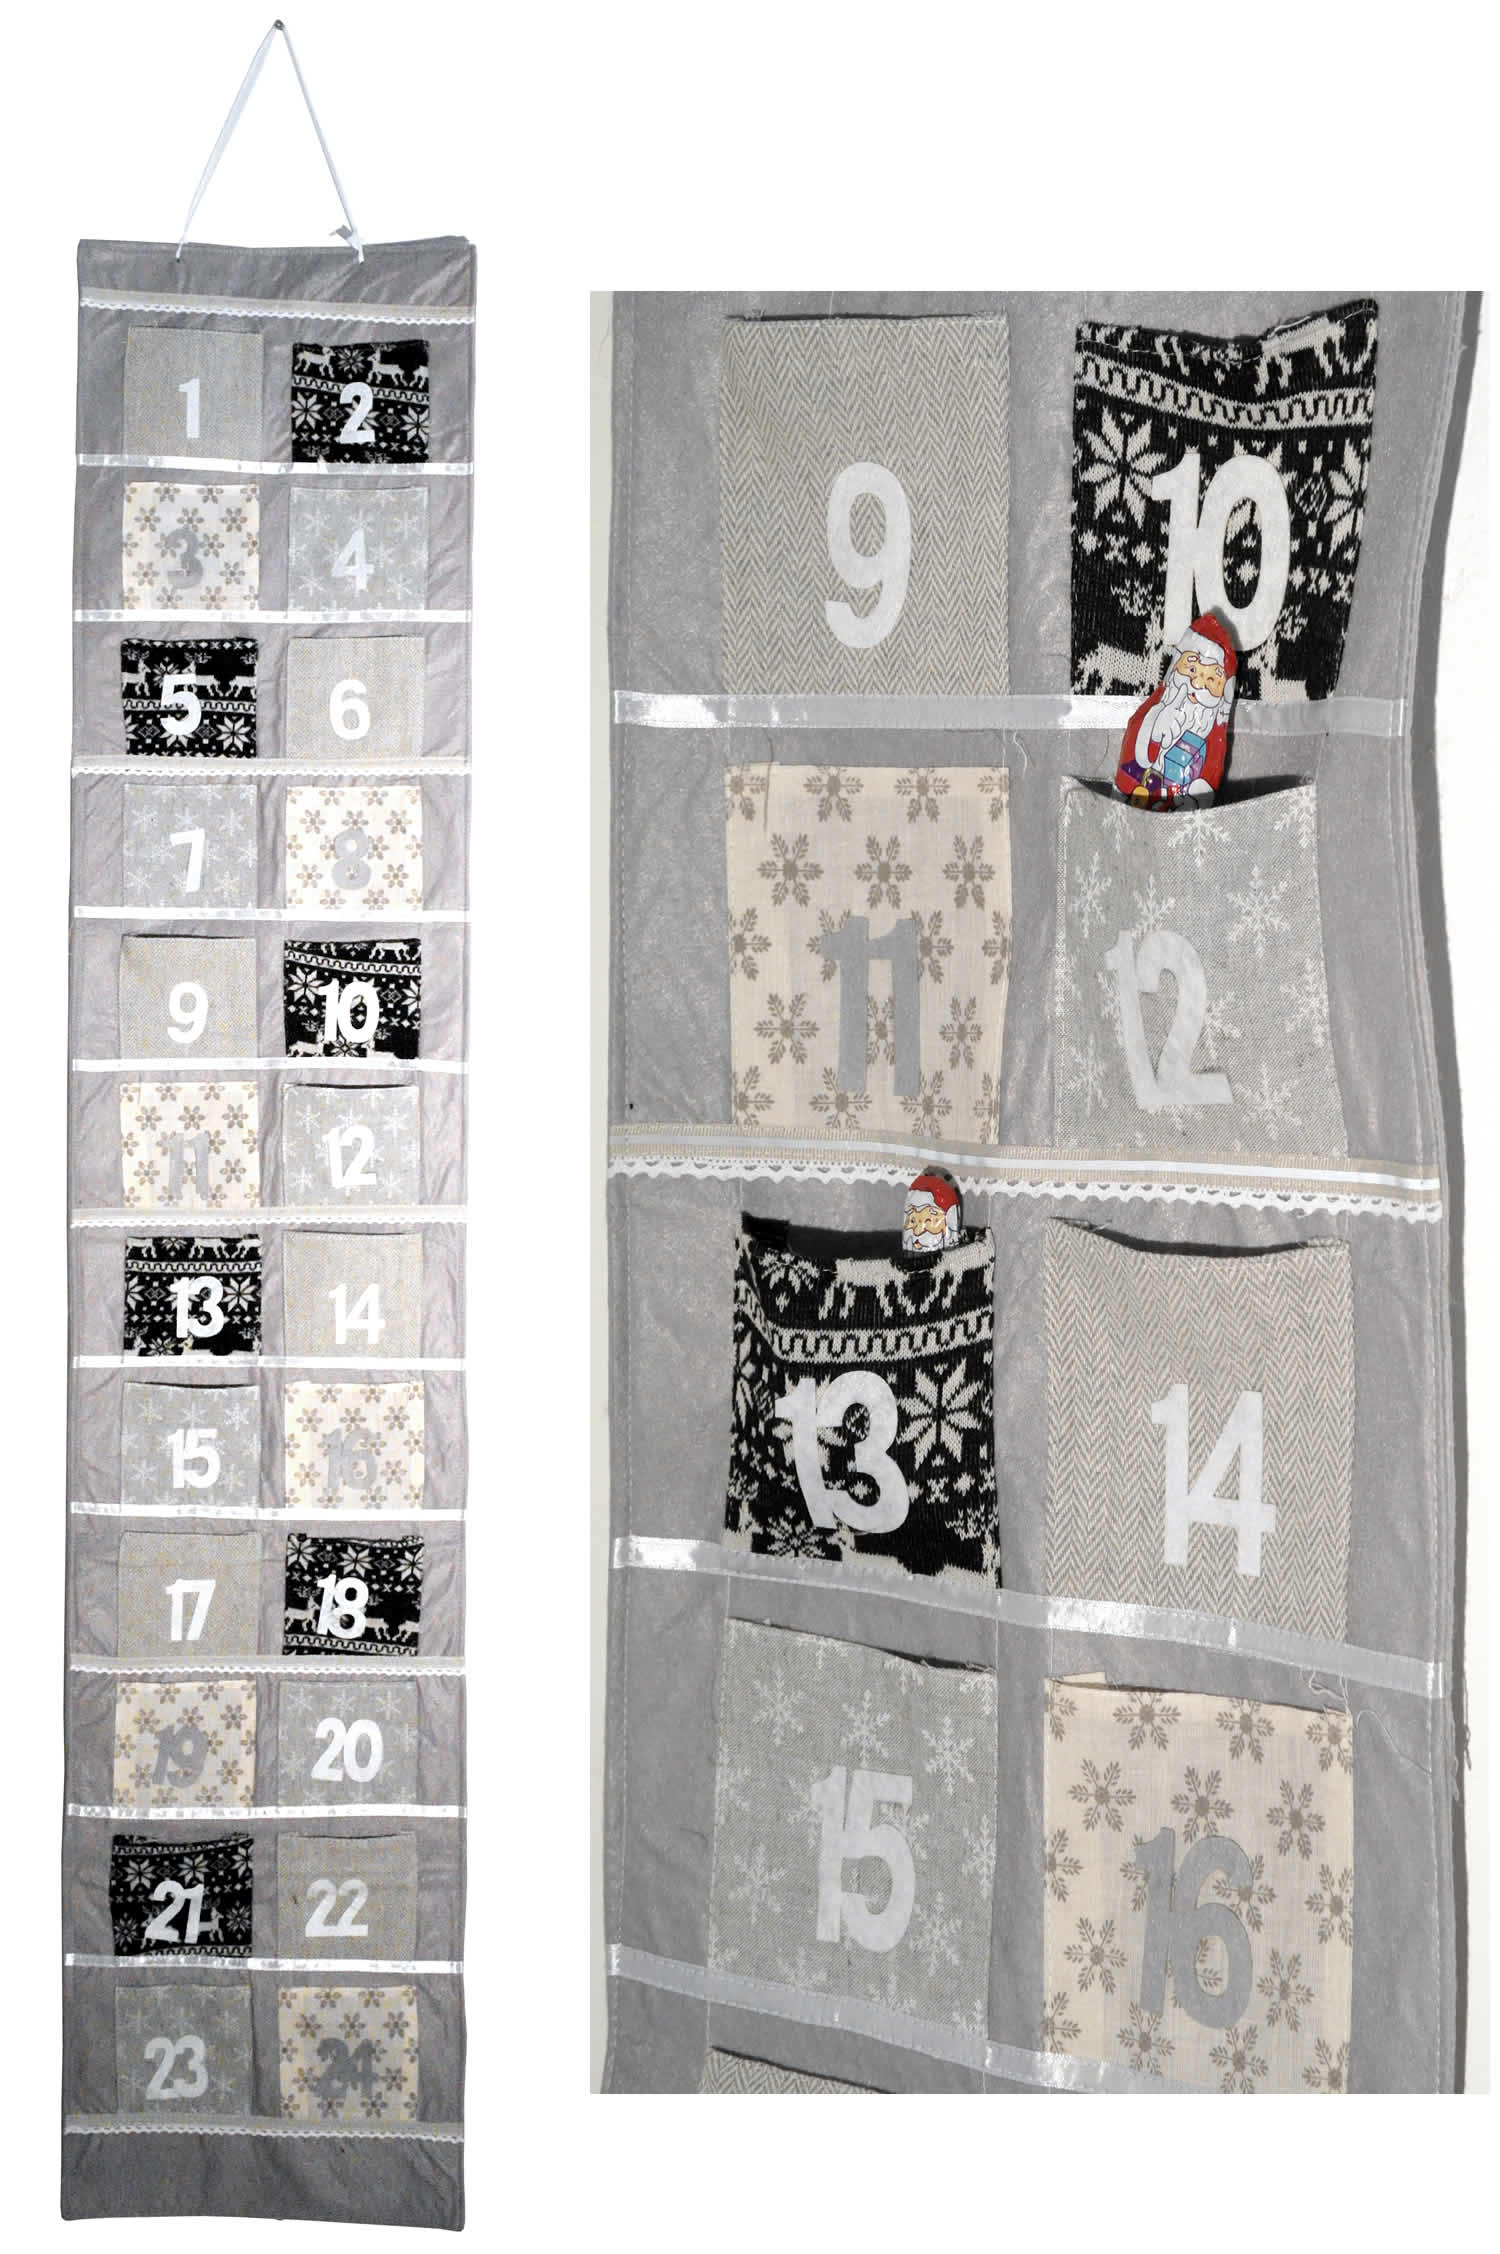 adventskalender selbstbef llen advent kalender girlande baum 24 s ckchen filz ebay. Black Bedroom Furniture Sets. Home Design Ideas